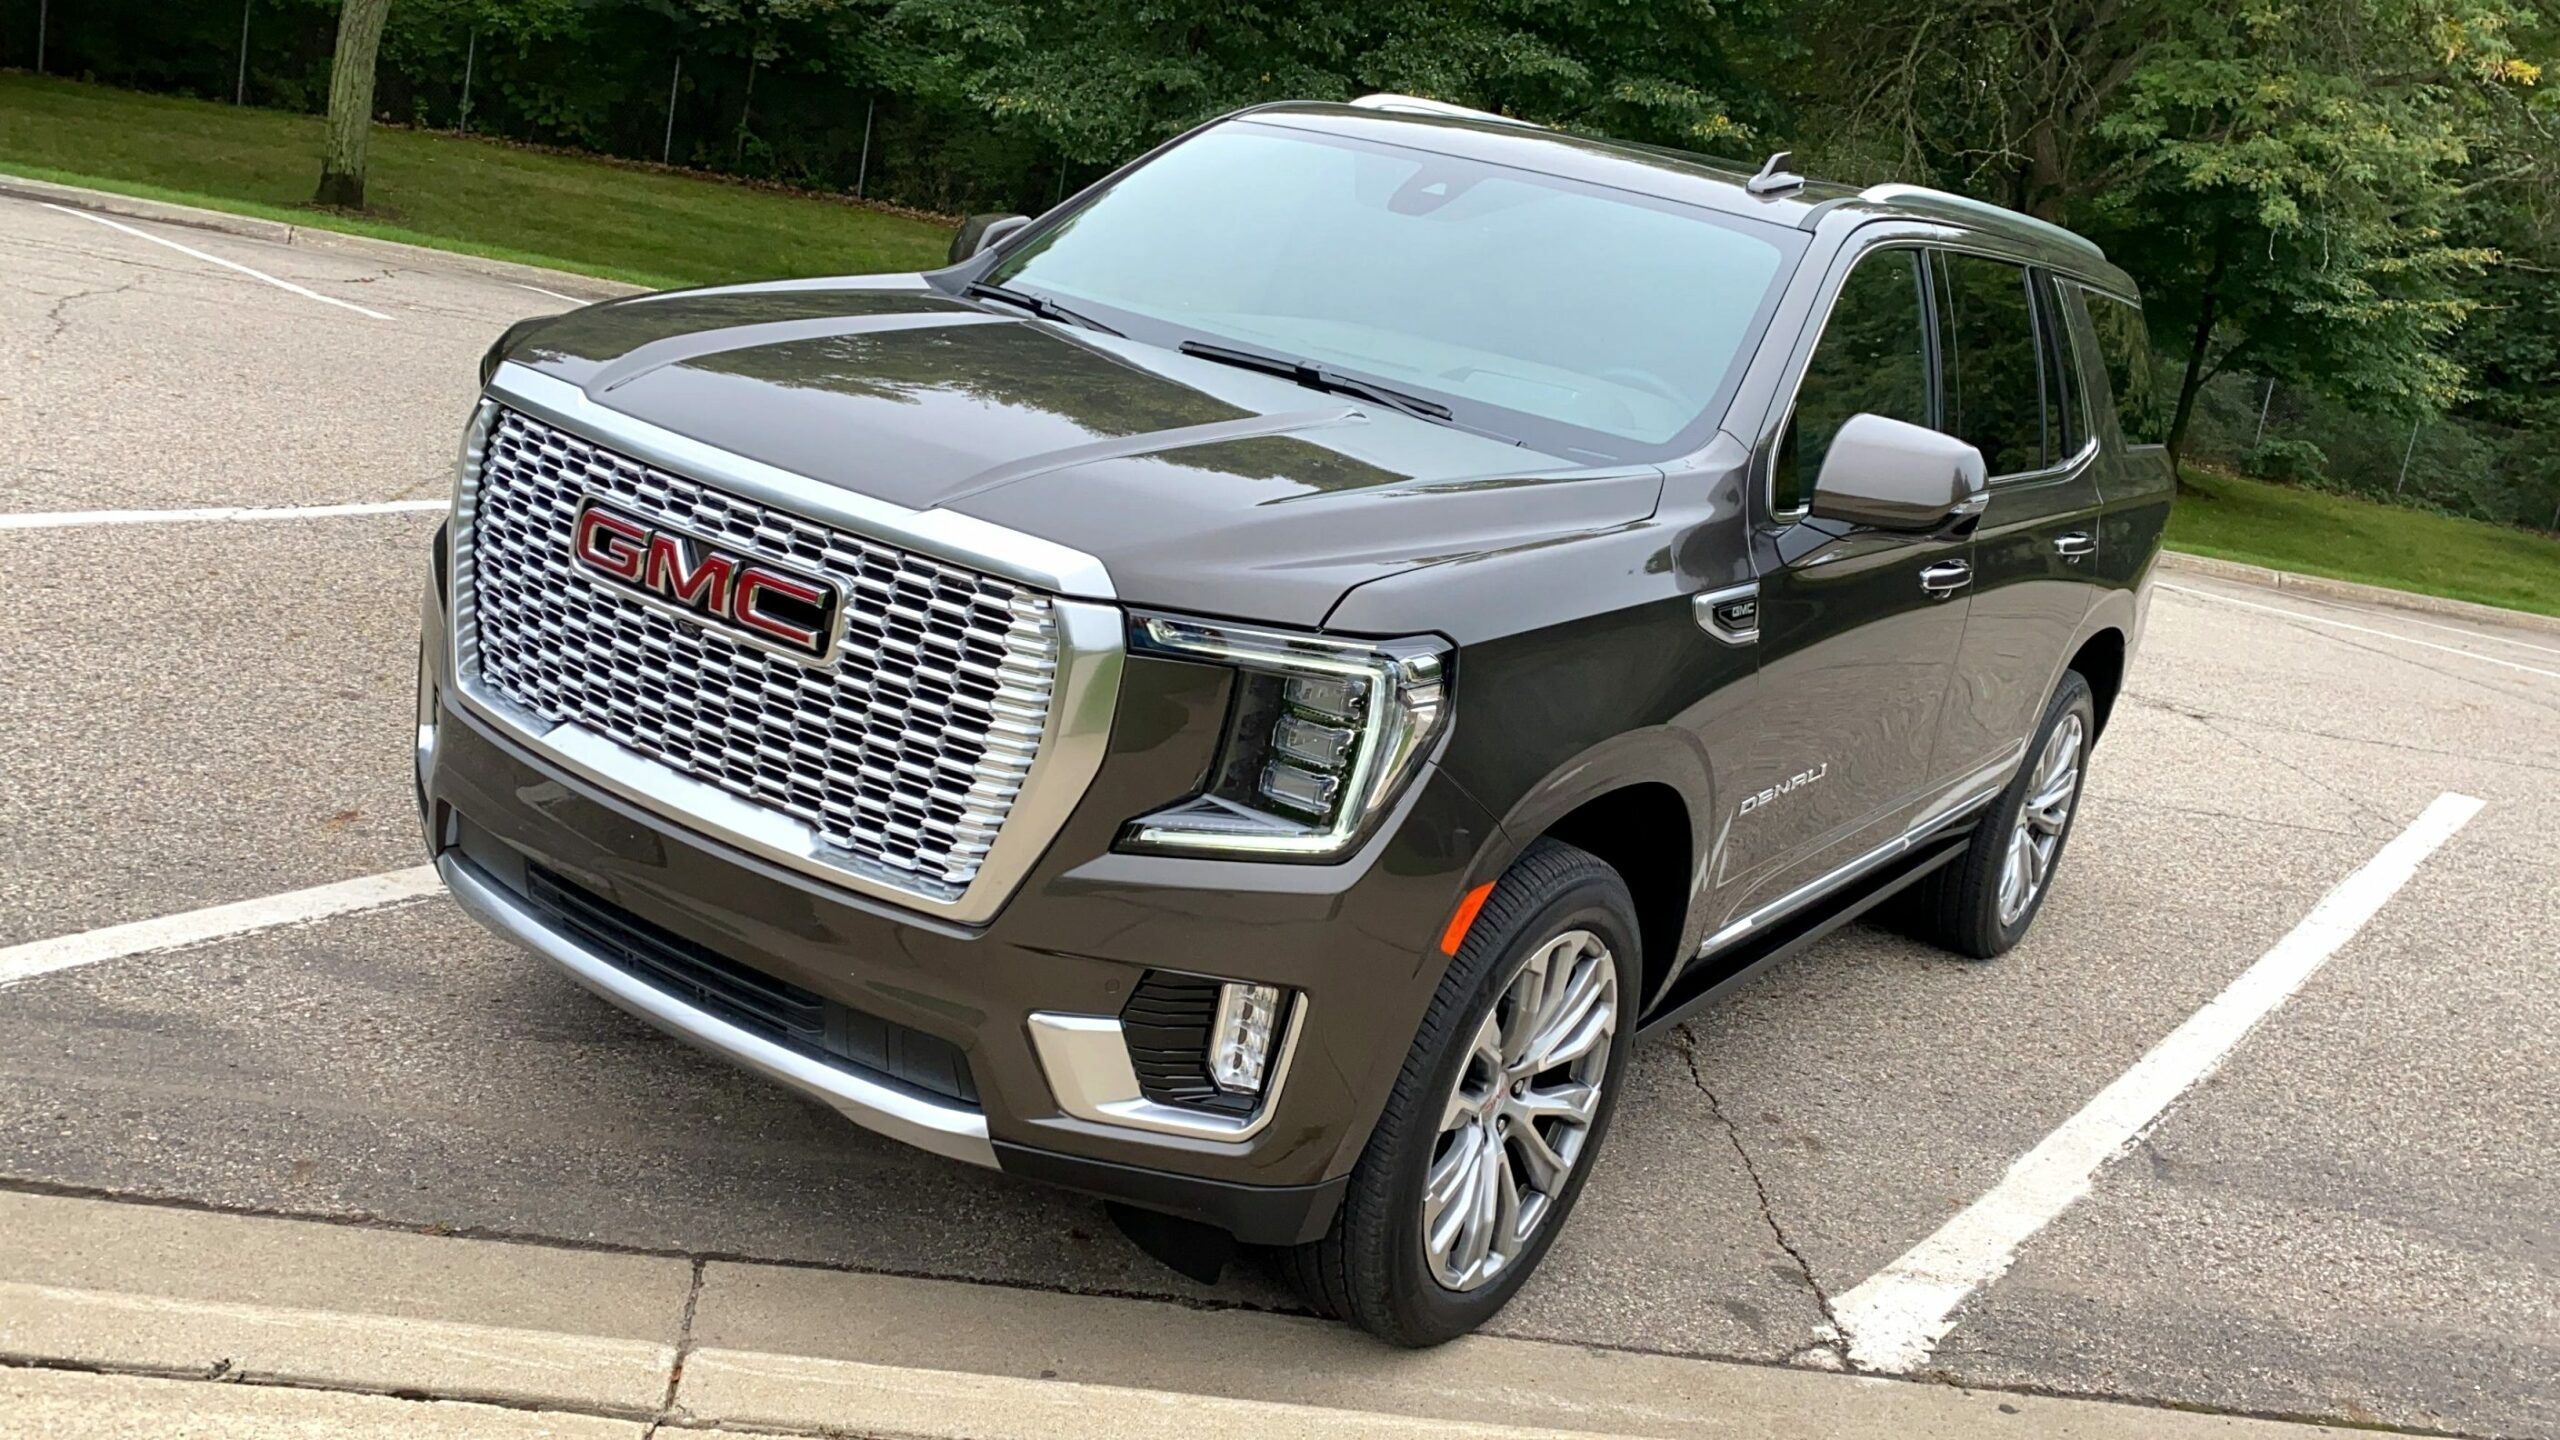 GMC SUV 2021 Specs and Review